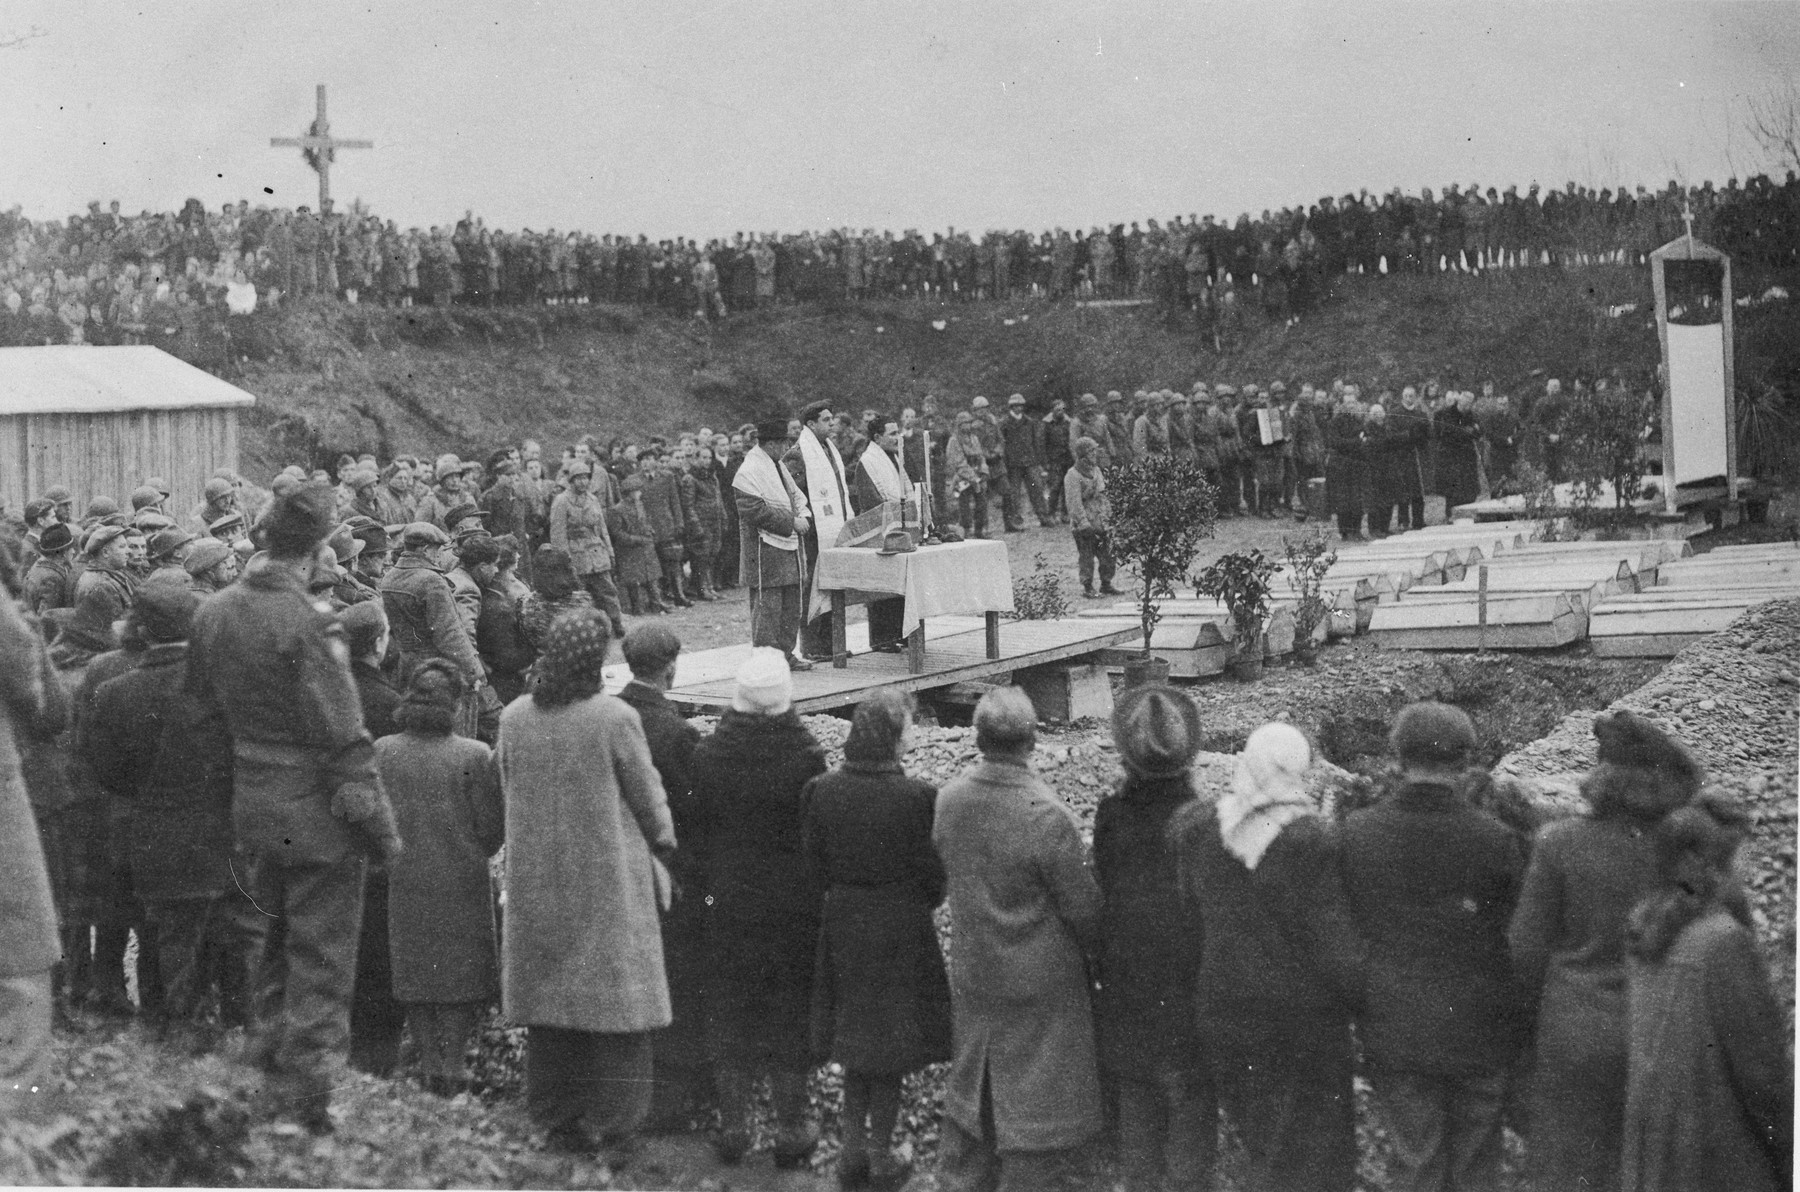 Three men draped in tallitot lead prayers at the dedication of a memorial and reburial at the site of the Pocking concentration camp.